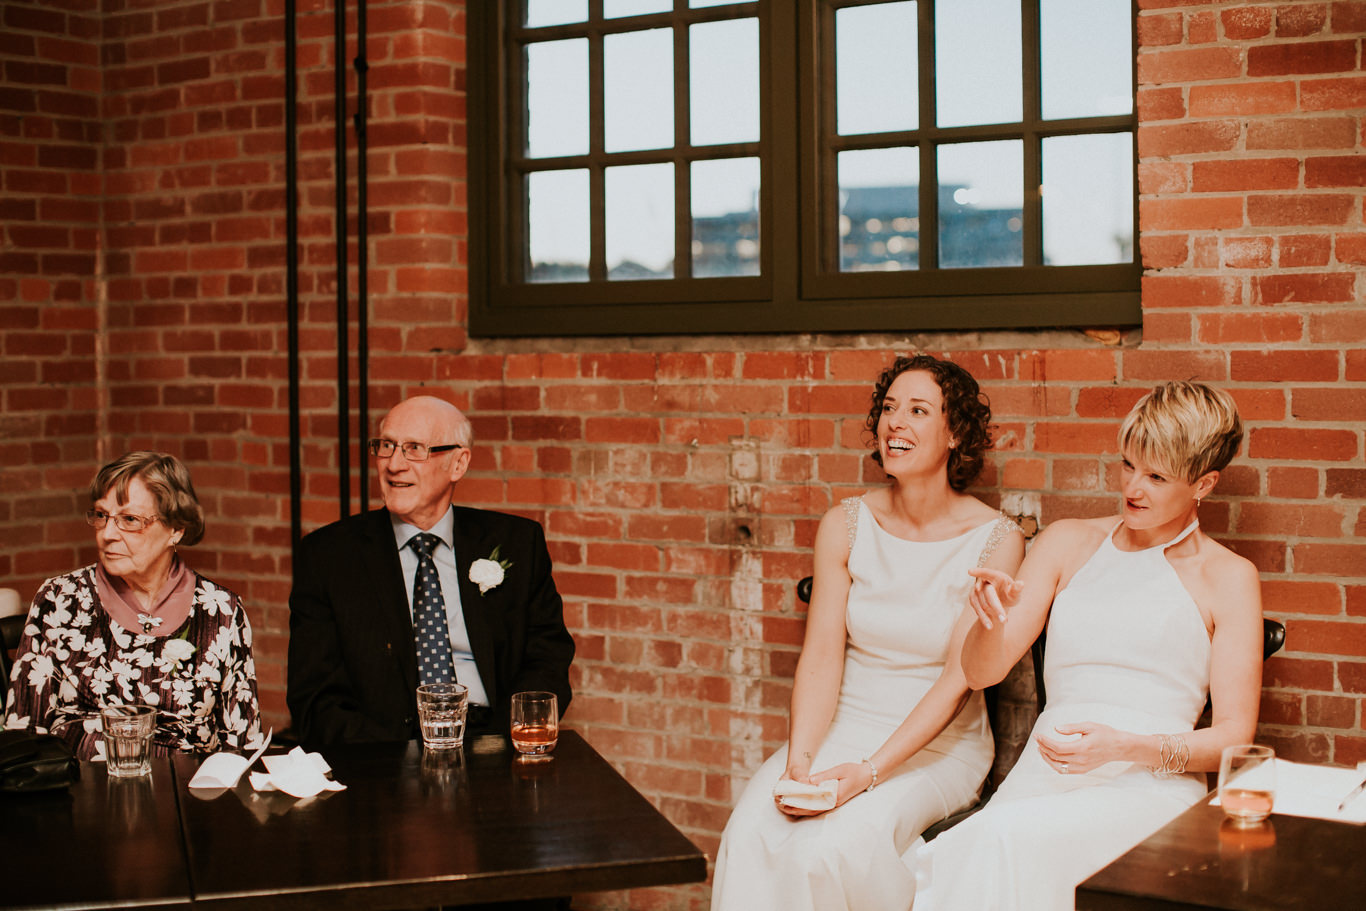 Lindsay-and-Heather-Charbar-Restaurant-Wedding-in-Calgary-185